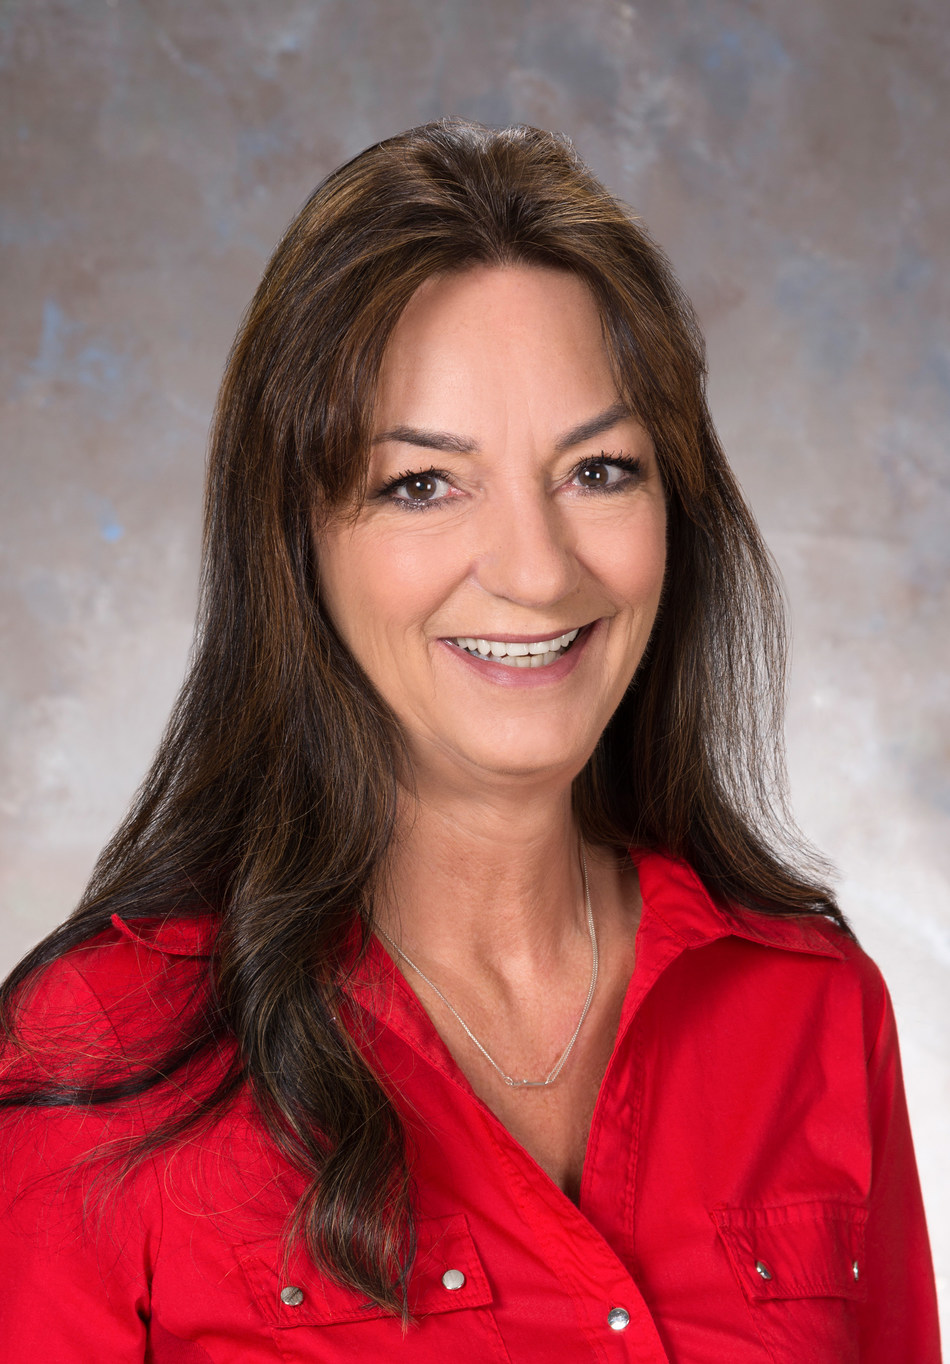 Watercrest Senior Living Group proudly announces the promotion of Kim Sviben to Area Director of Operations.